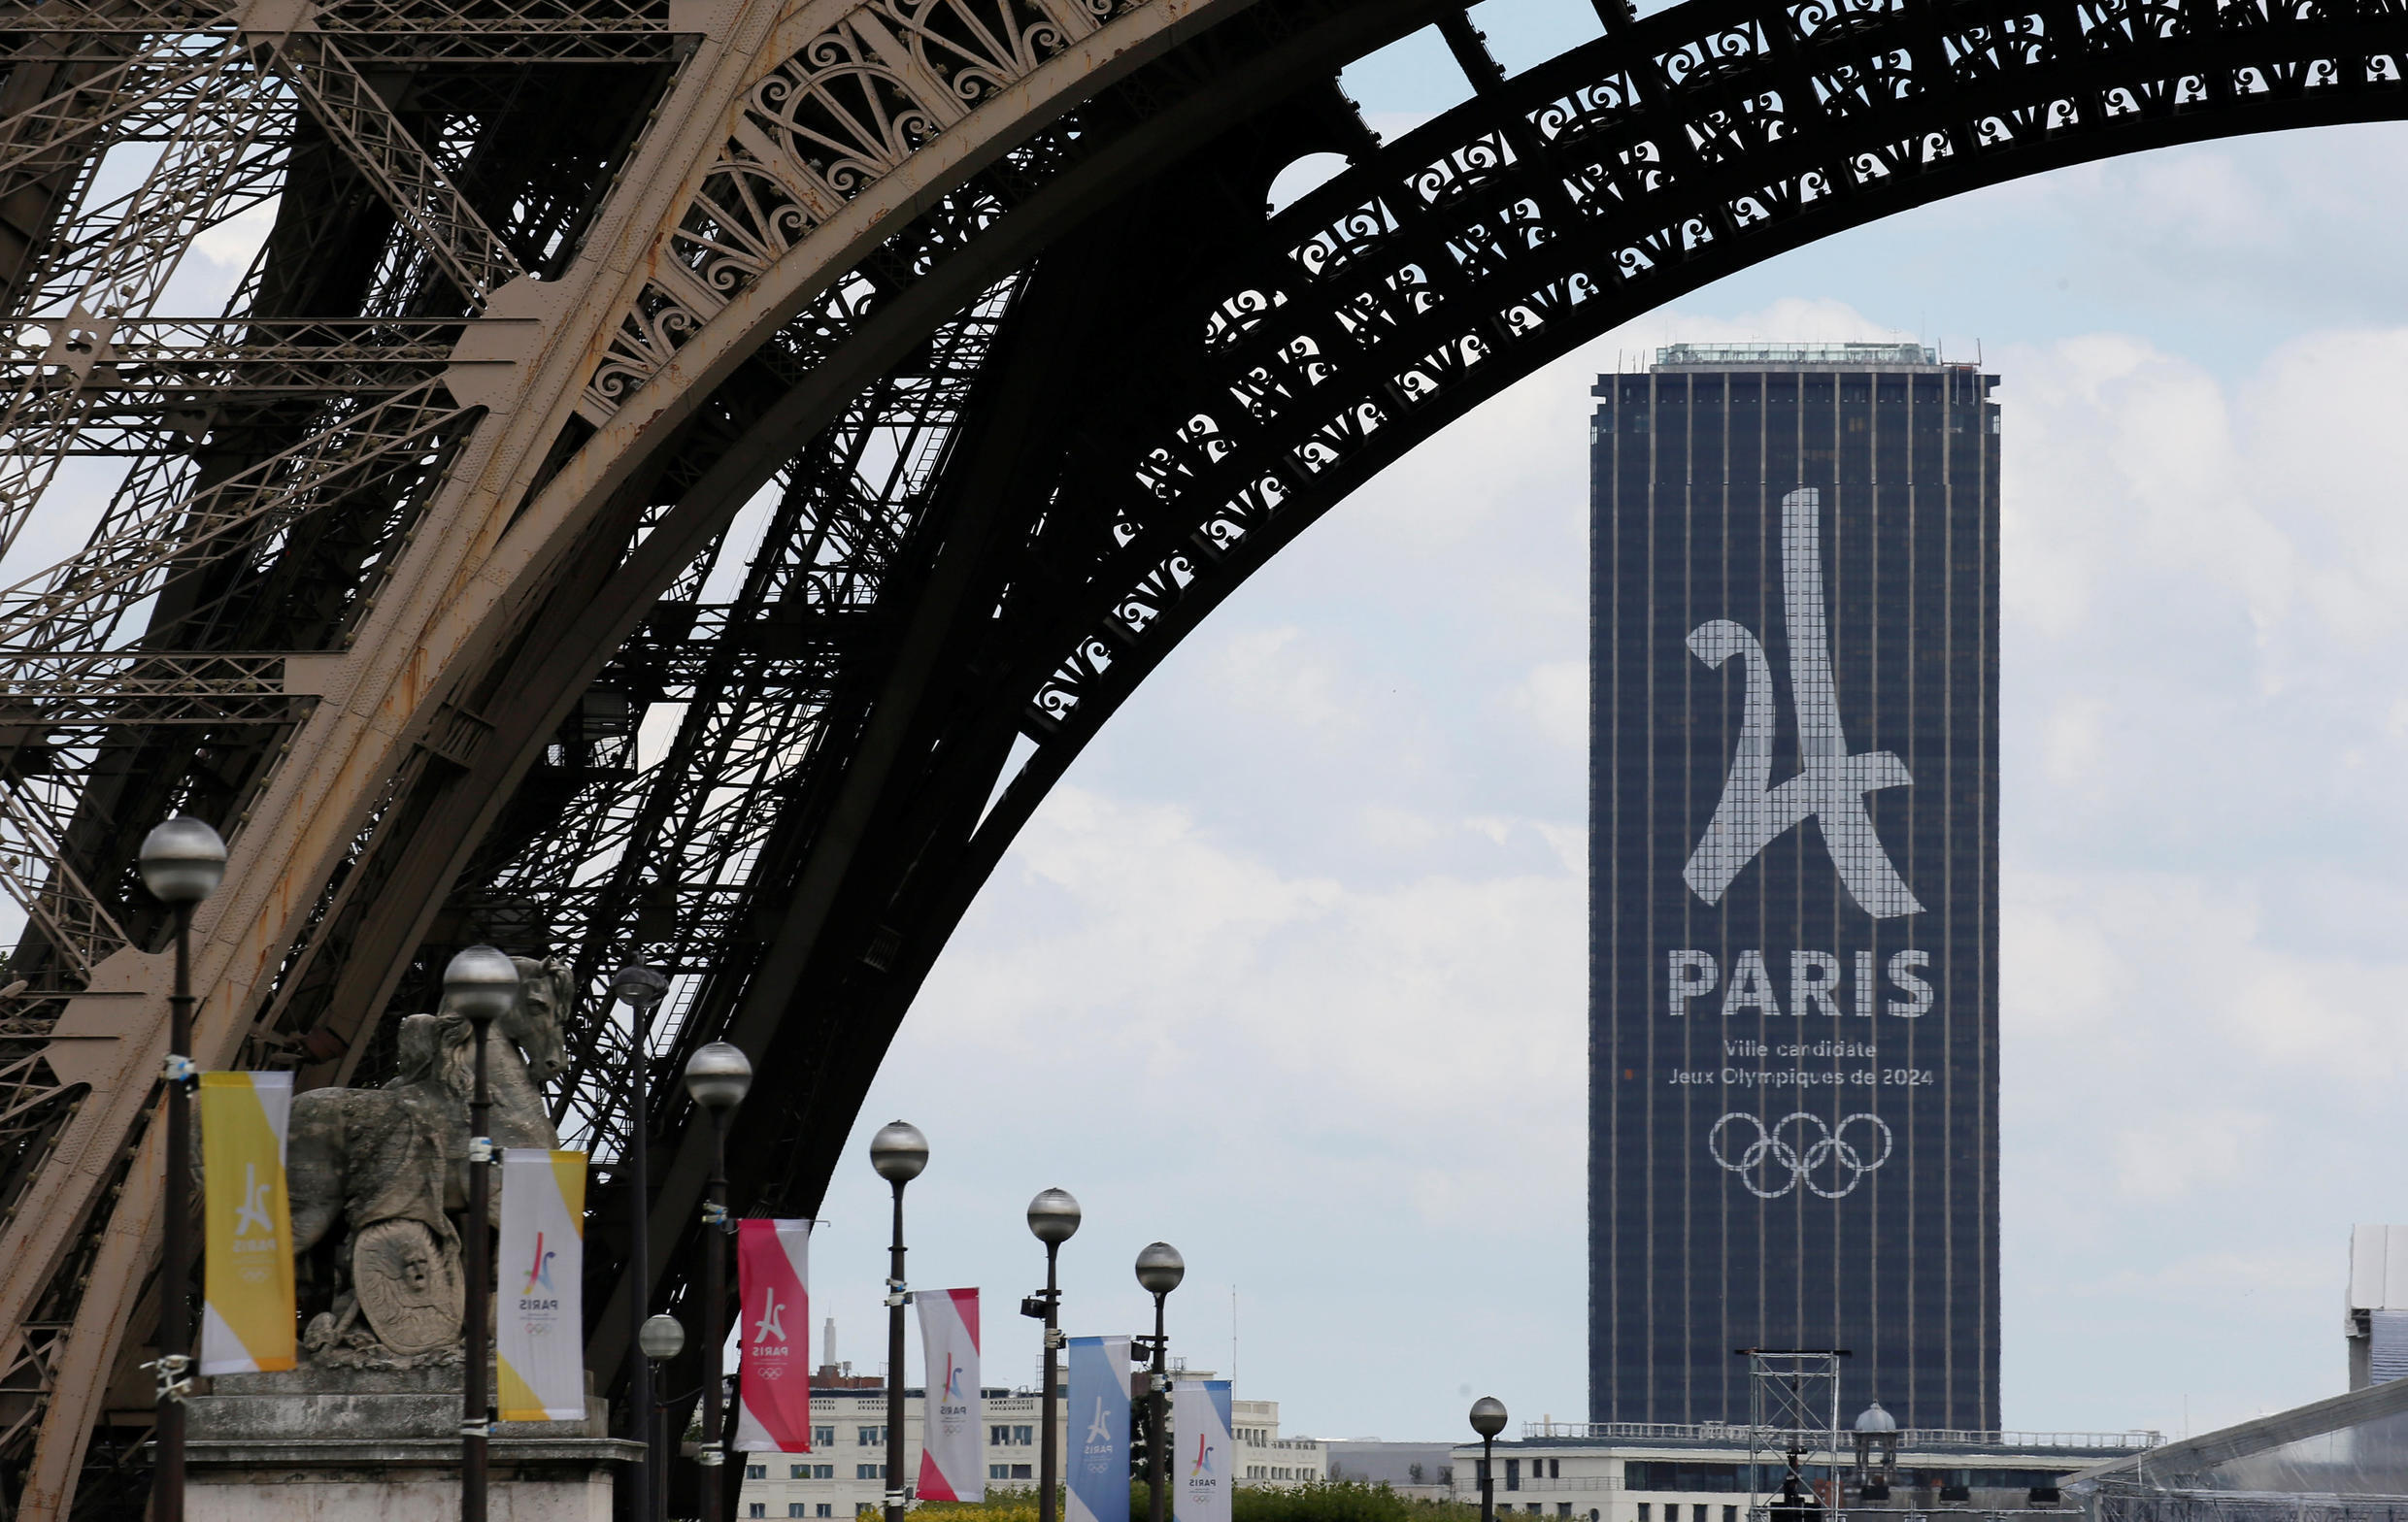 The logo of the Paris candidacy for the 2024 Olympics is seen on the Montparnasse tower in this file picture.